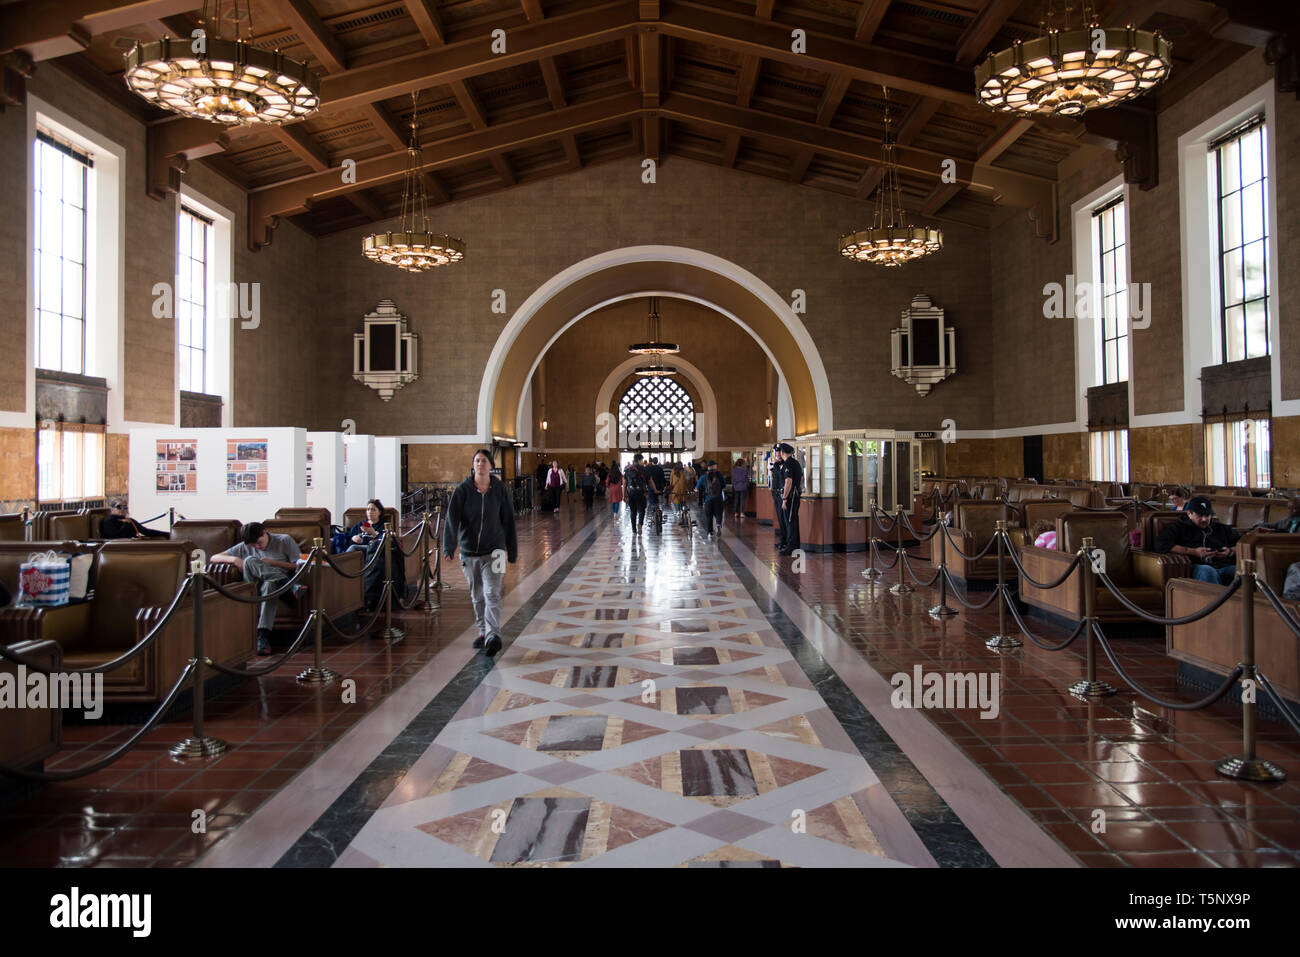 LOS ANGELES, CA/USA  - APRIL 14, 2019: Waiting area of the historic Union Station in Downtown Los Angeles - Stock Image